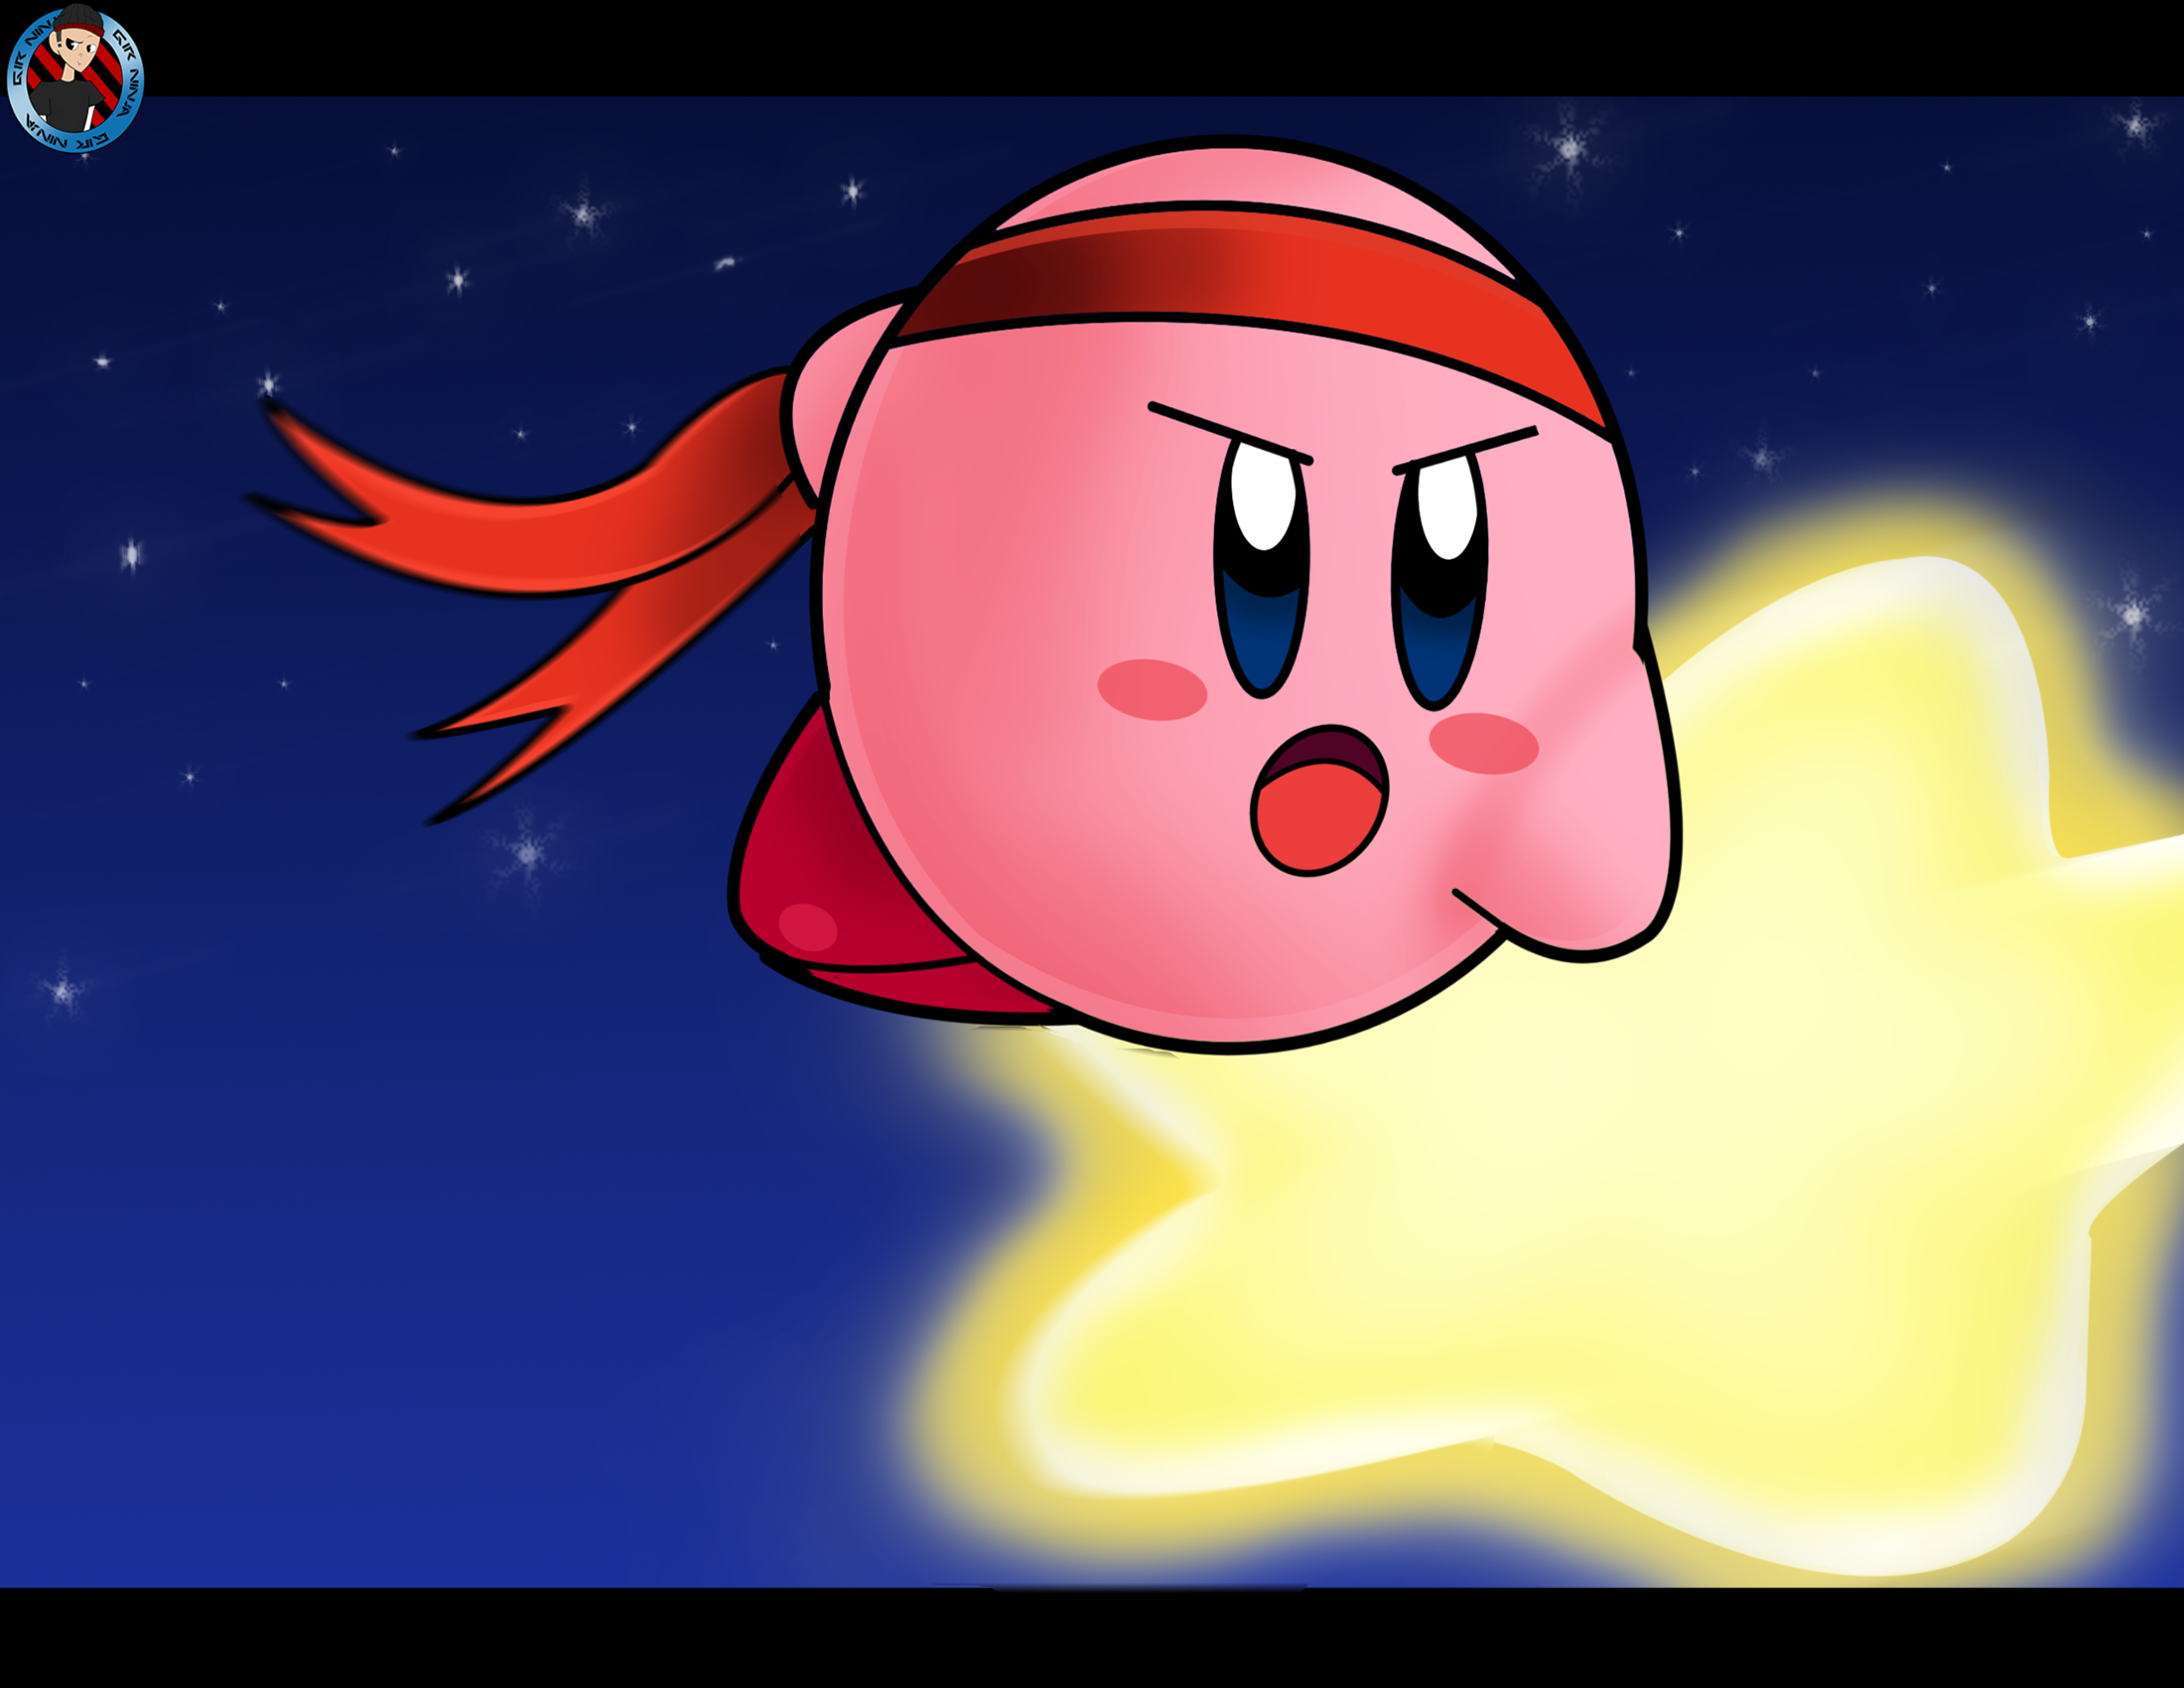 KIRBY - AMONGST THE STARS